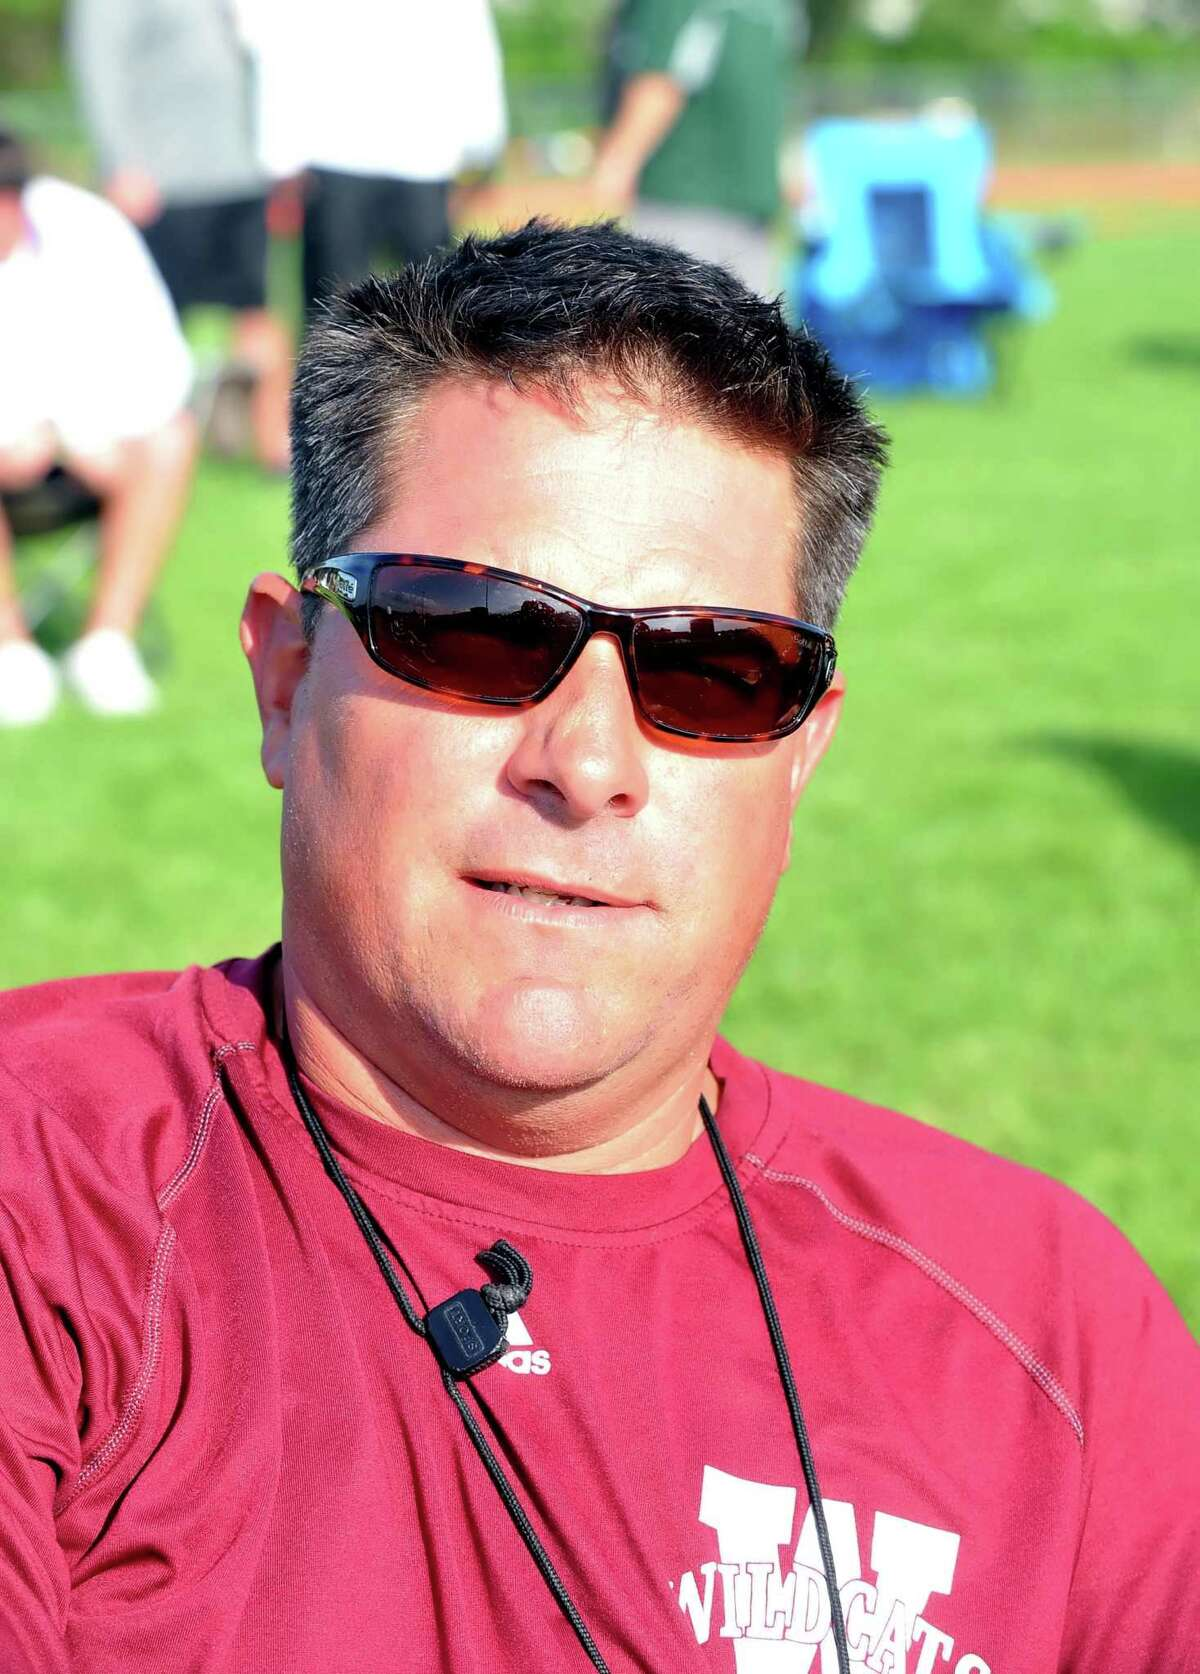 The UIL District 17 6A track meet was held, 4-14-2016, at Cy Ridge High School. Cy Woods boys track coach Mike Zachos.